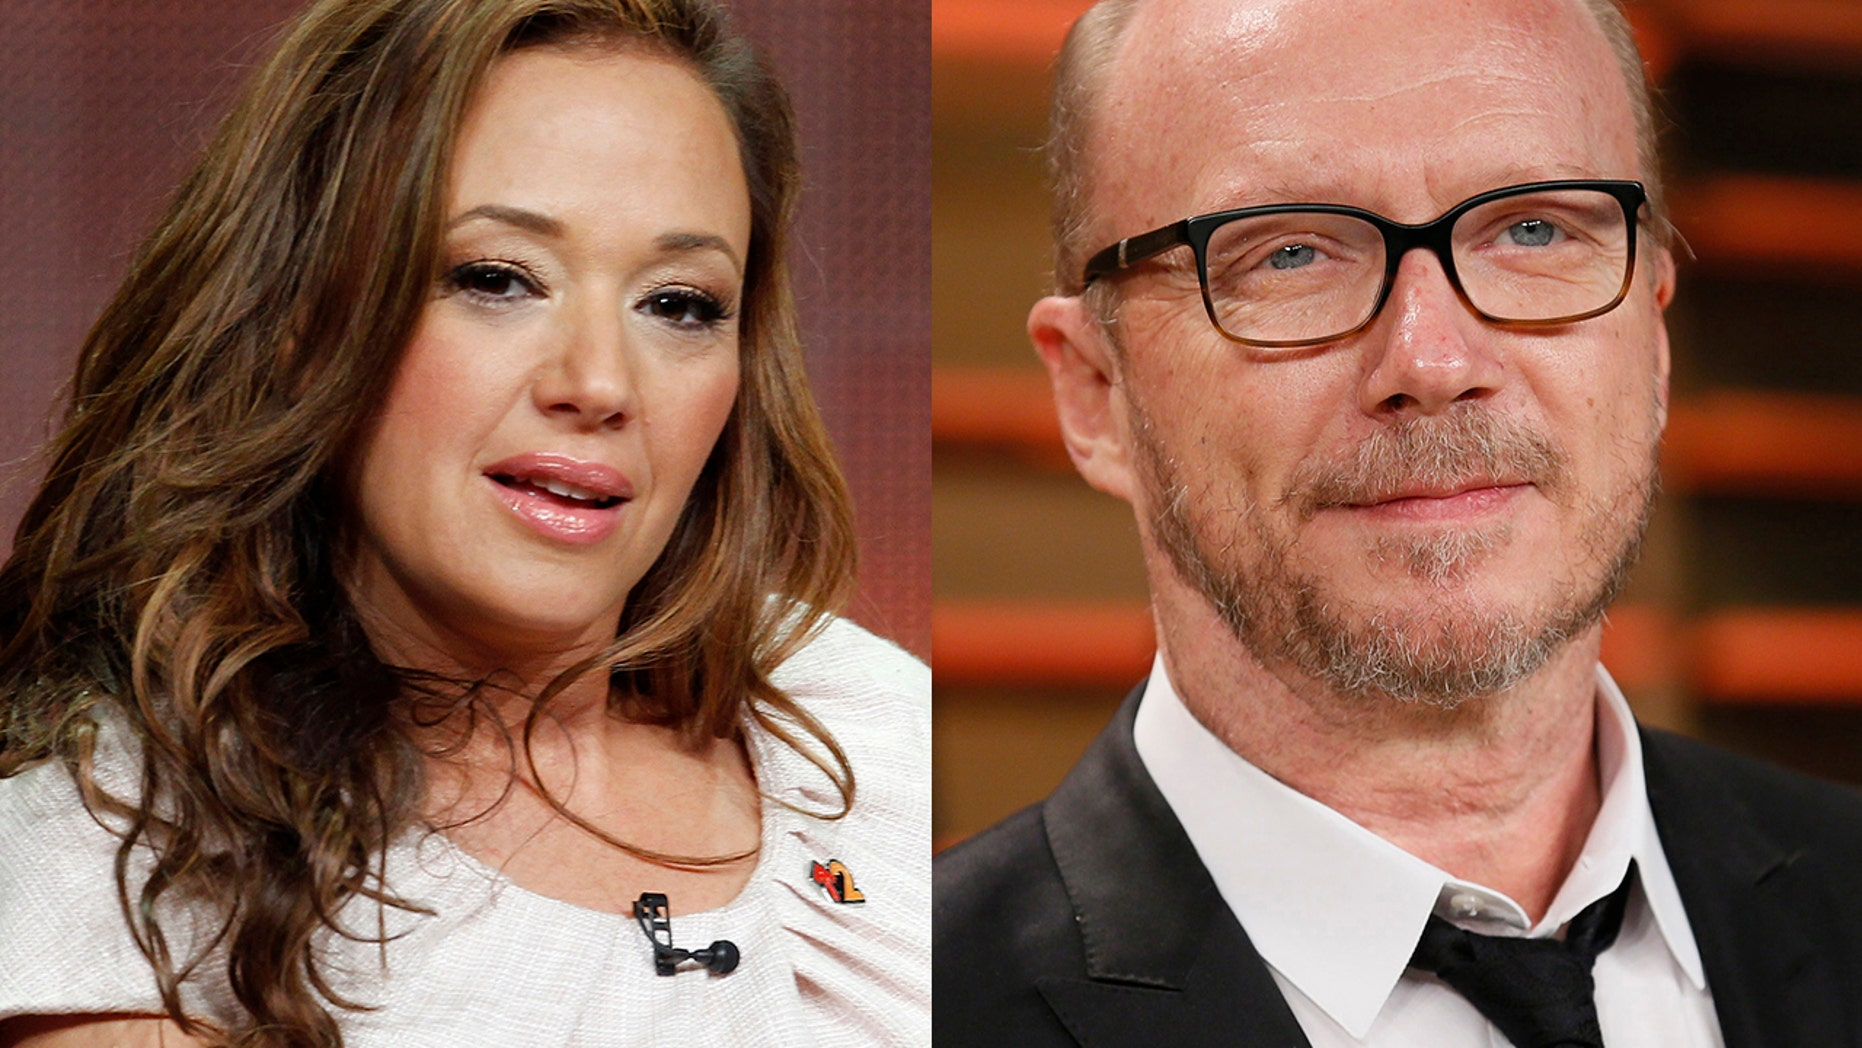 Actress Leah Remini defended fellow ex-Scientologist Paul Haggis against multiple rape accusations, suggesting the church is behind the claims.